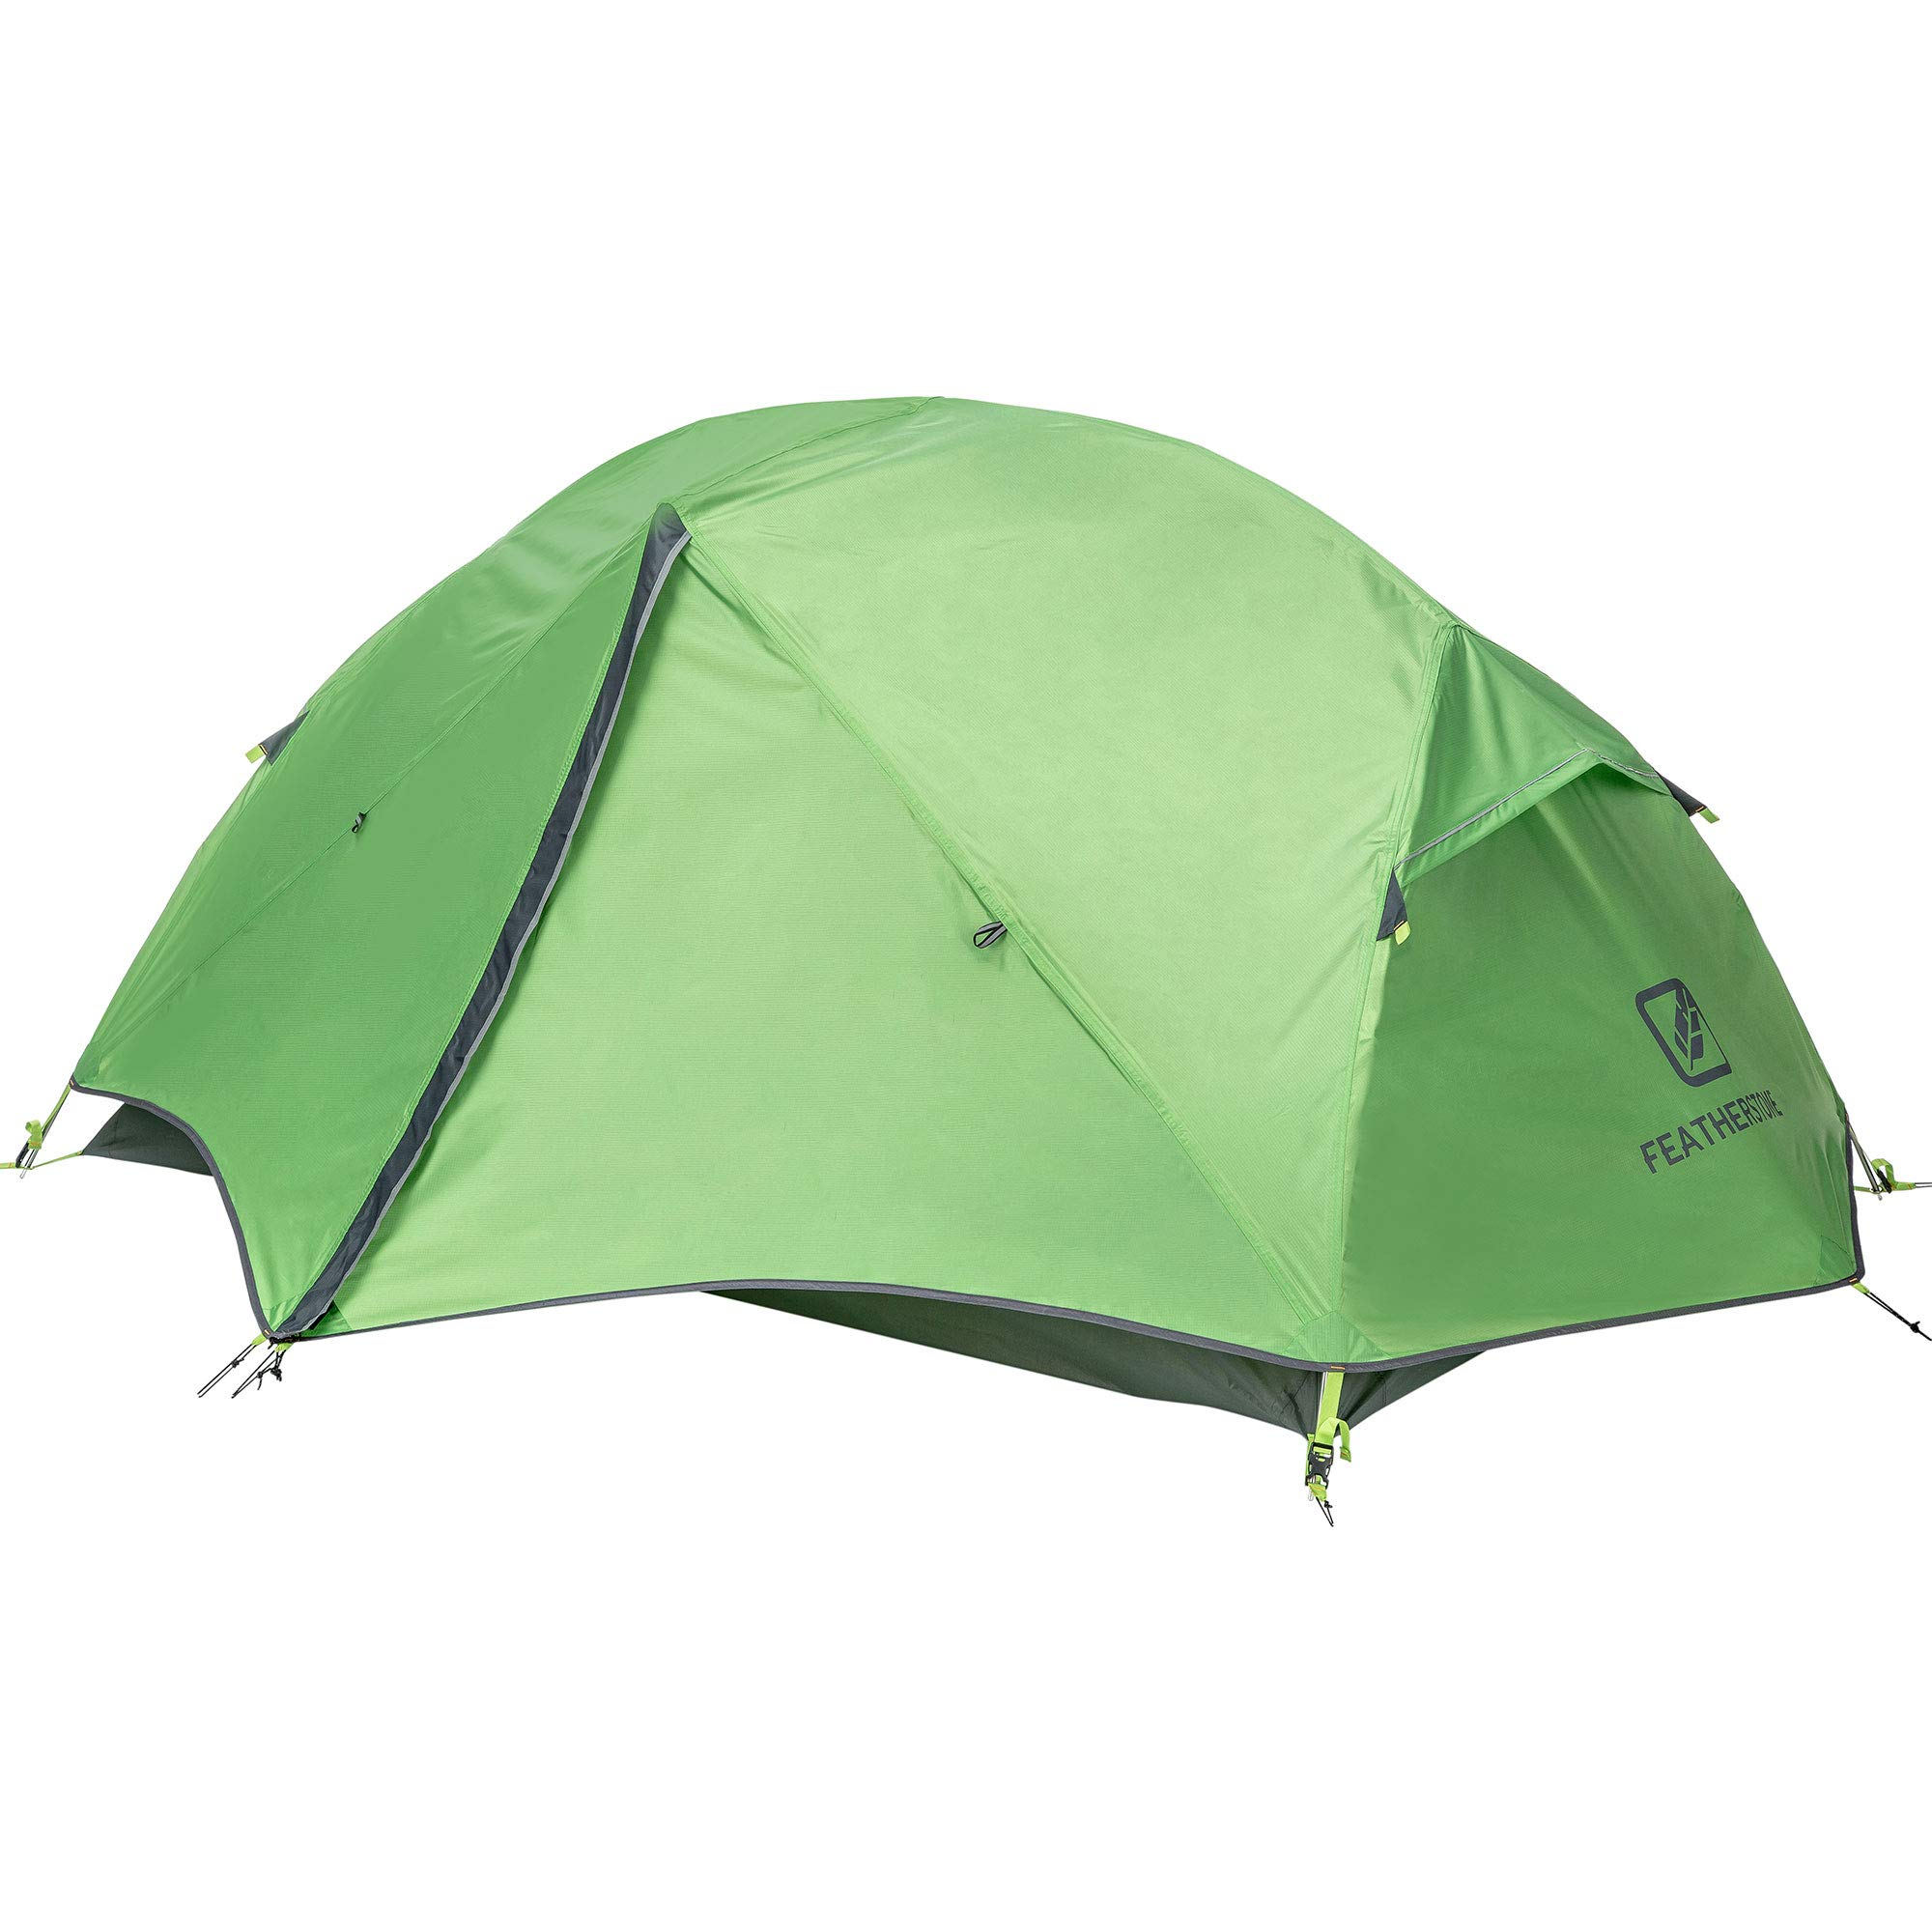 Featherstone Outdoor UL Peridot Backpacking 2 Person Tent for Ultralight 3-Season Camping and Expeditions by Featherstone